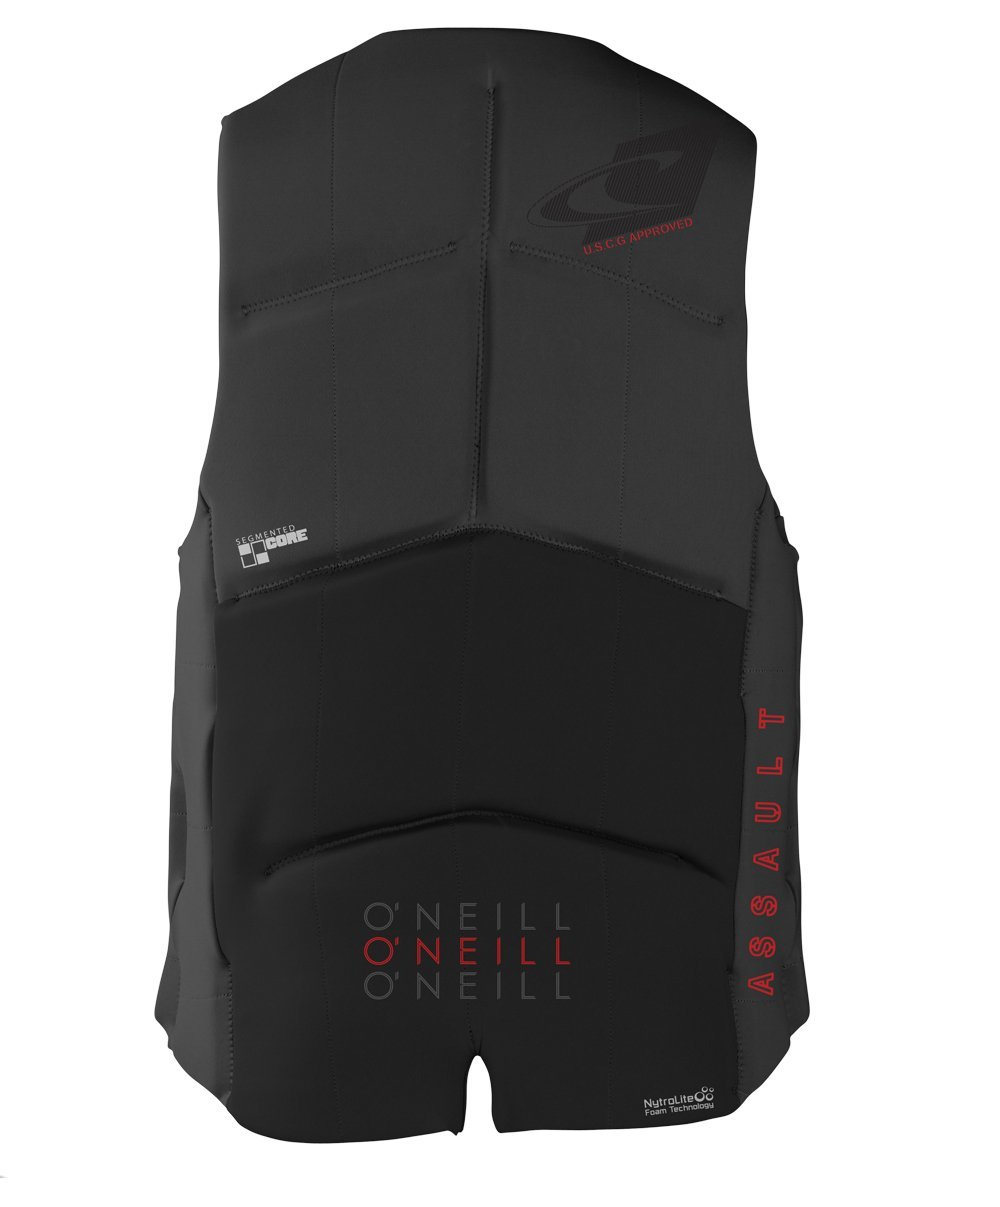 O'Neill Wetsuits Men's Assault USCG Life Vest by O'Neill Wetsuits (Image #2)